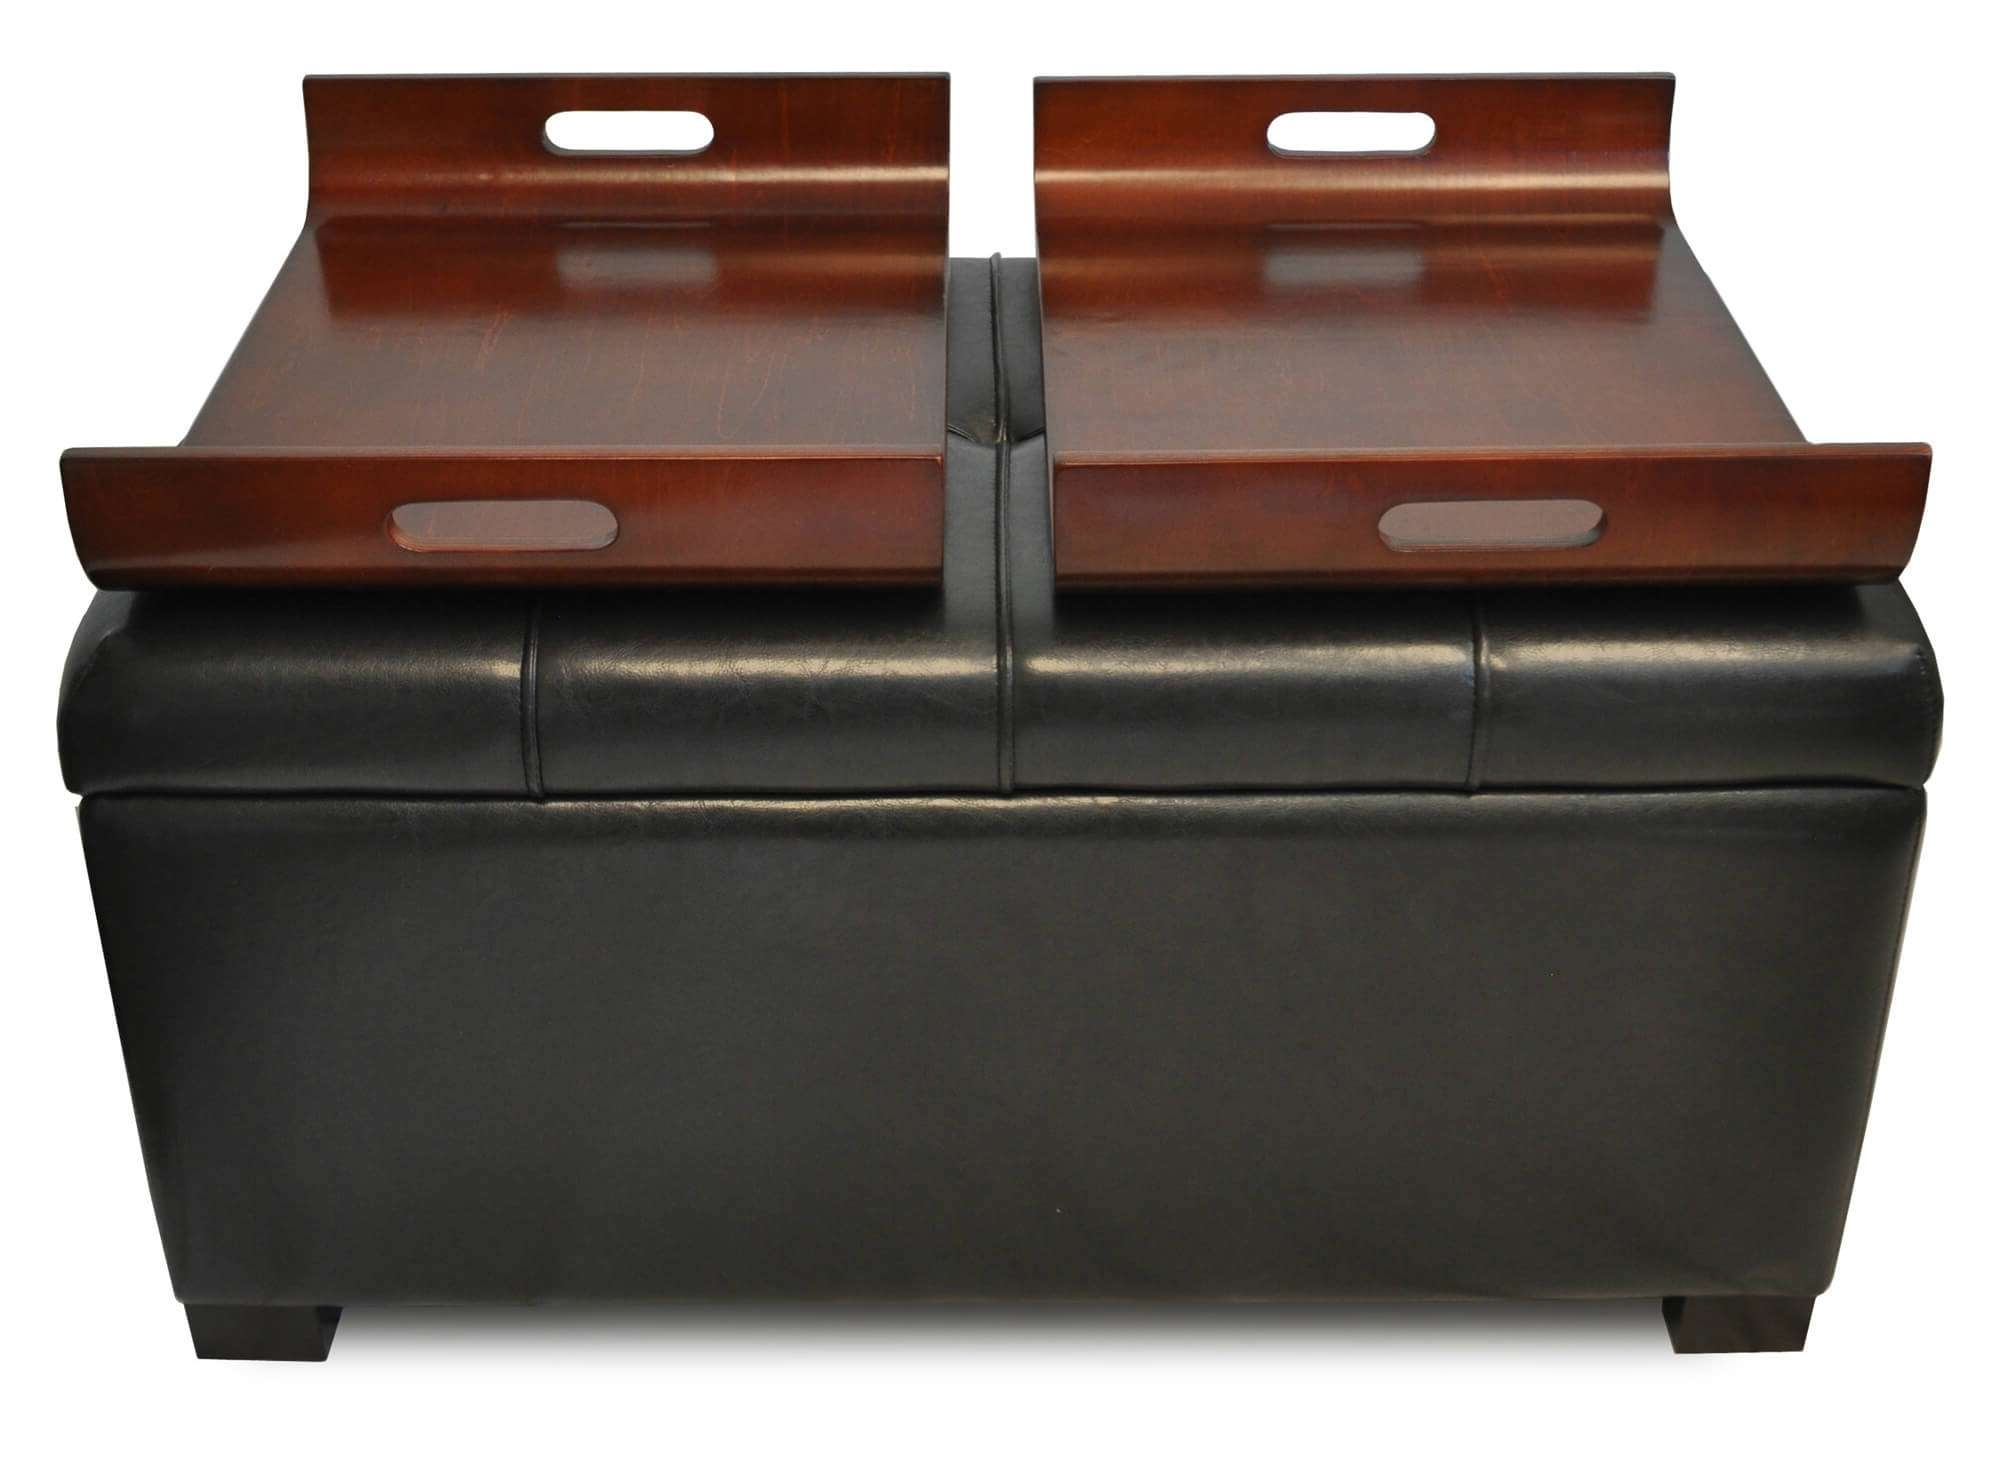 Most Popular Brown Leather Ottoman Coffee Tables Throughout 36 Top Brown Leather Ottoman Coffee Tables (View 19 of 20)